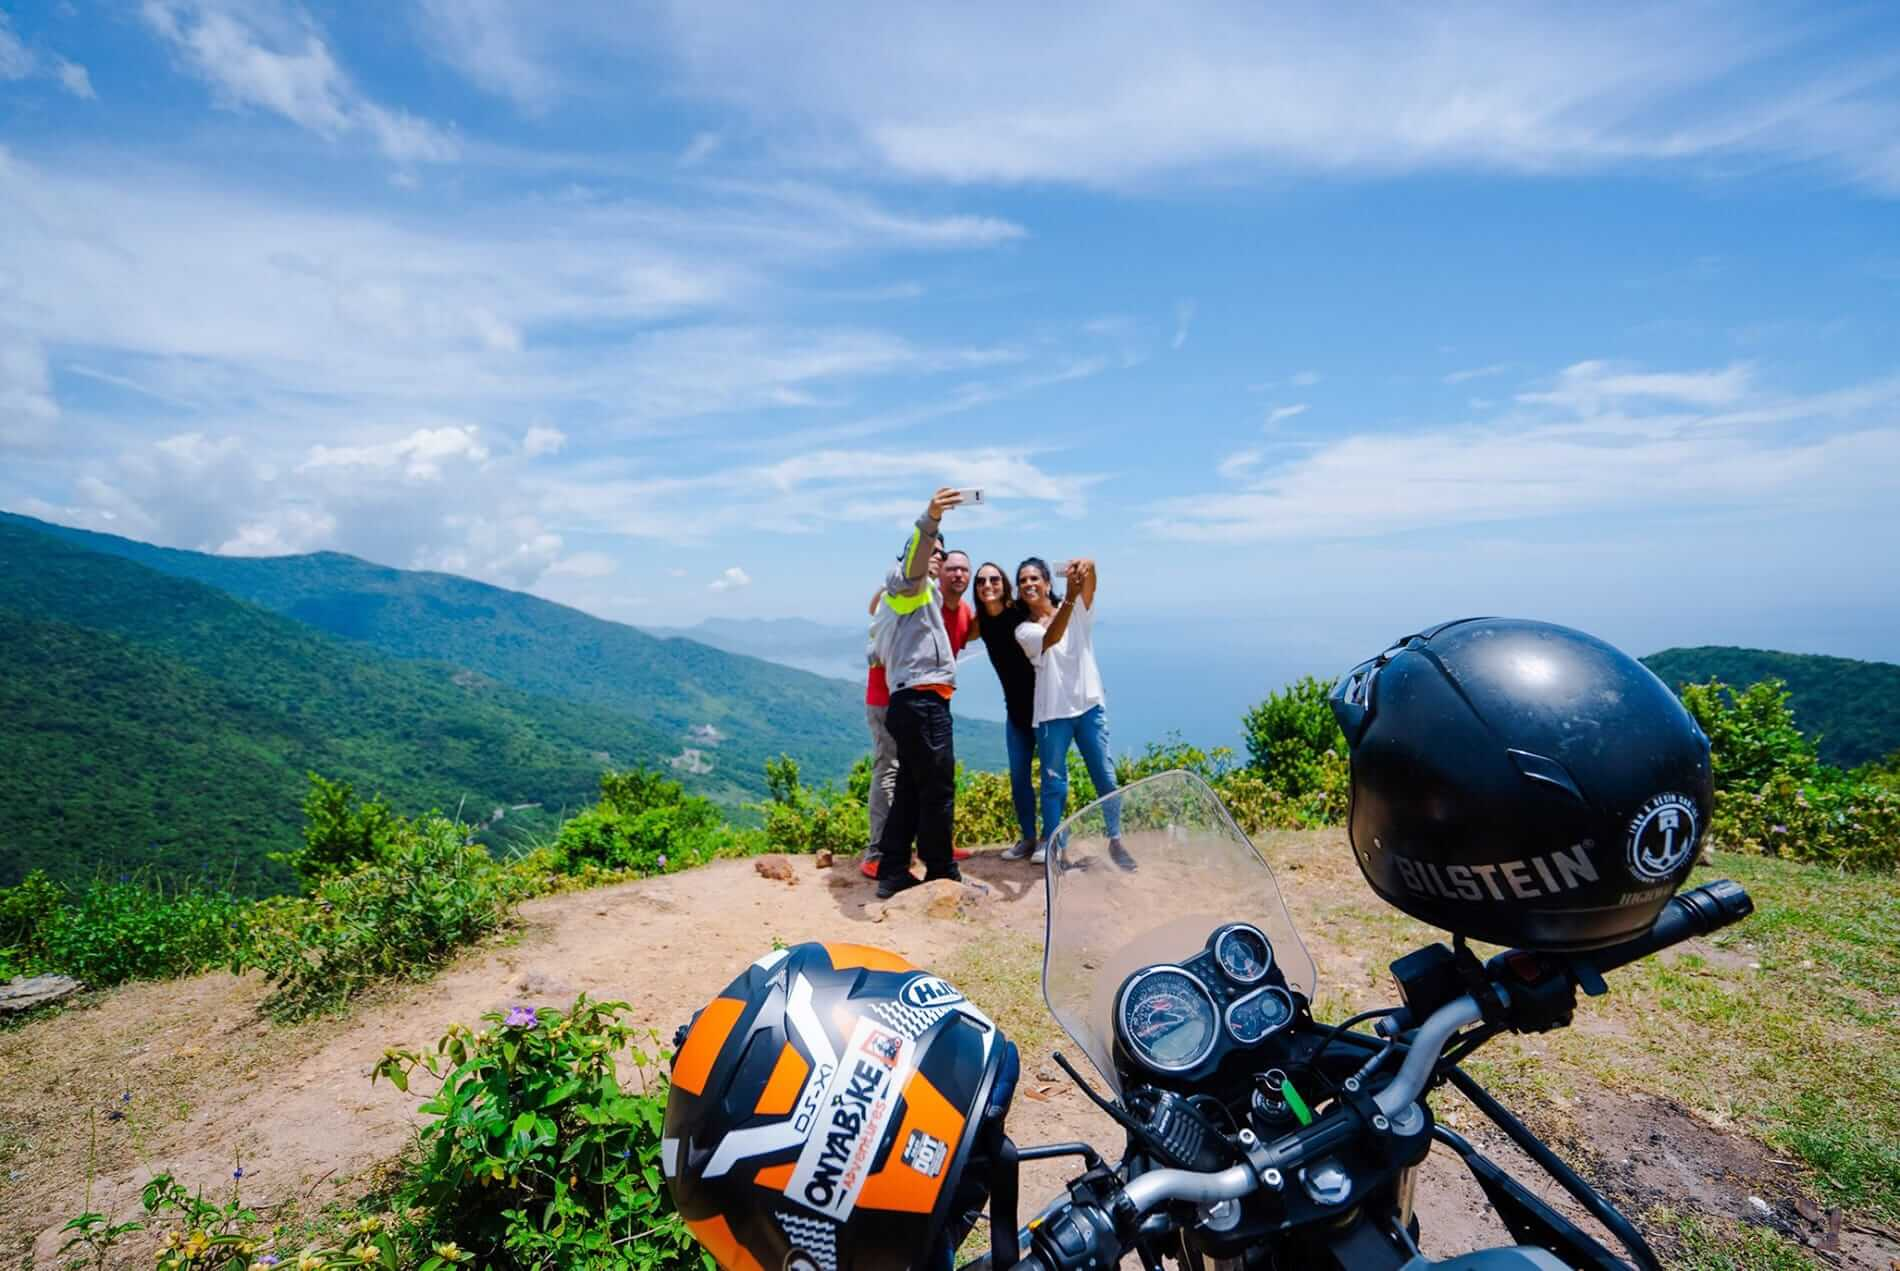 taking selfies at a motorbike tour in Hoi An